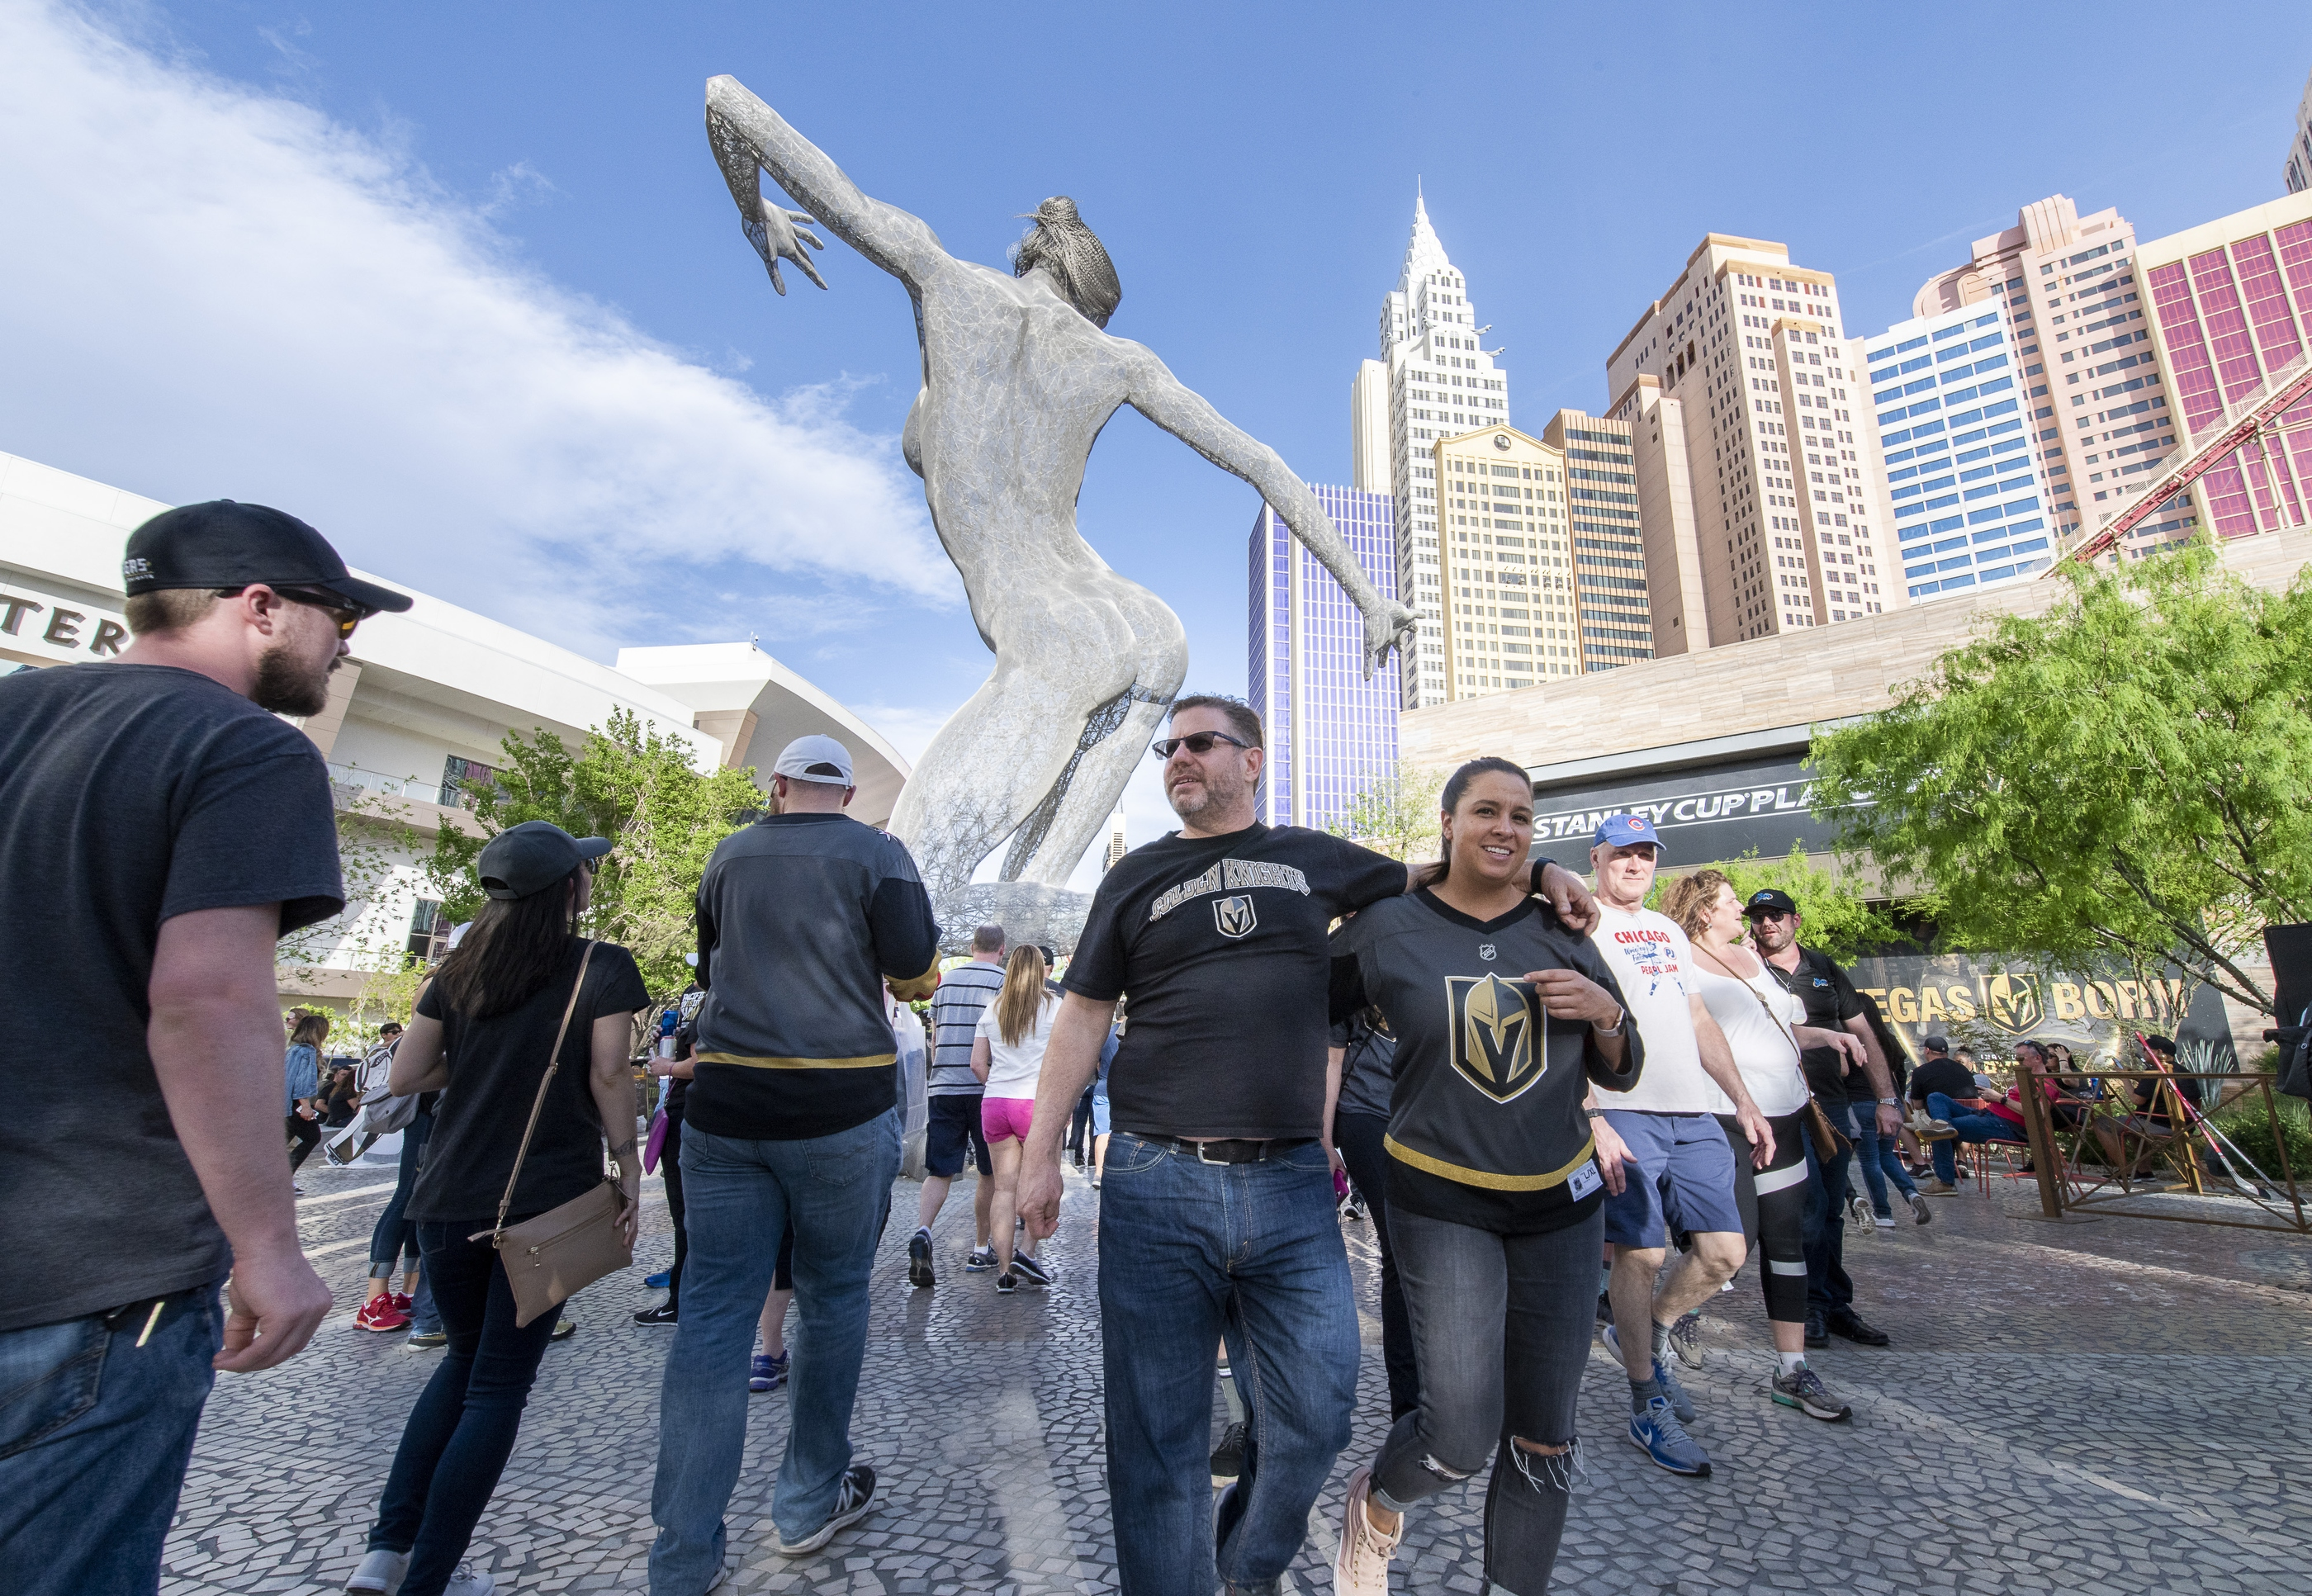 Fans arrive at Toshiba Plaza as the Vegas Golden Knights prepare to meet the Los Angeles Kings in the first quarterfinal game of the NHL Stanley Cup Playoffs at T-Mobile Arena in Las Vegas on Wednesday, April 11, 2018.  CREDIT: Mark Damon/Las Vegas News Bureau